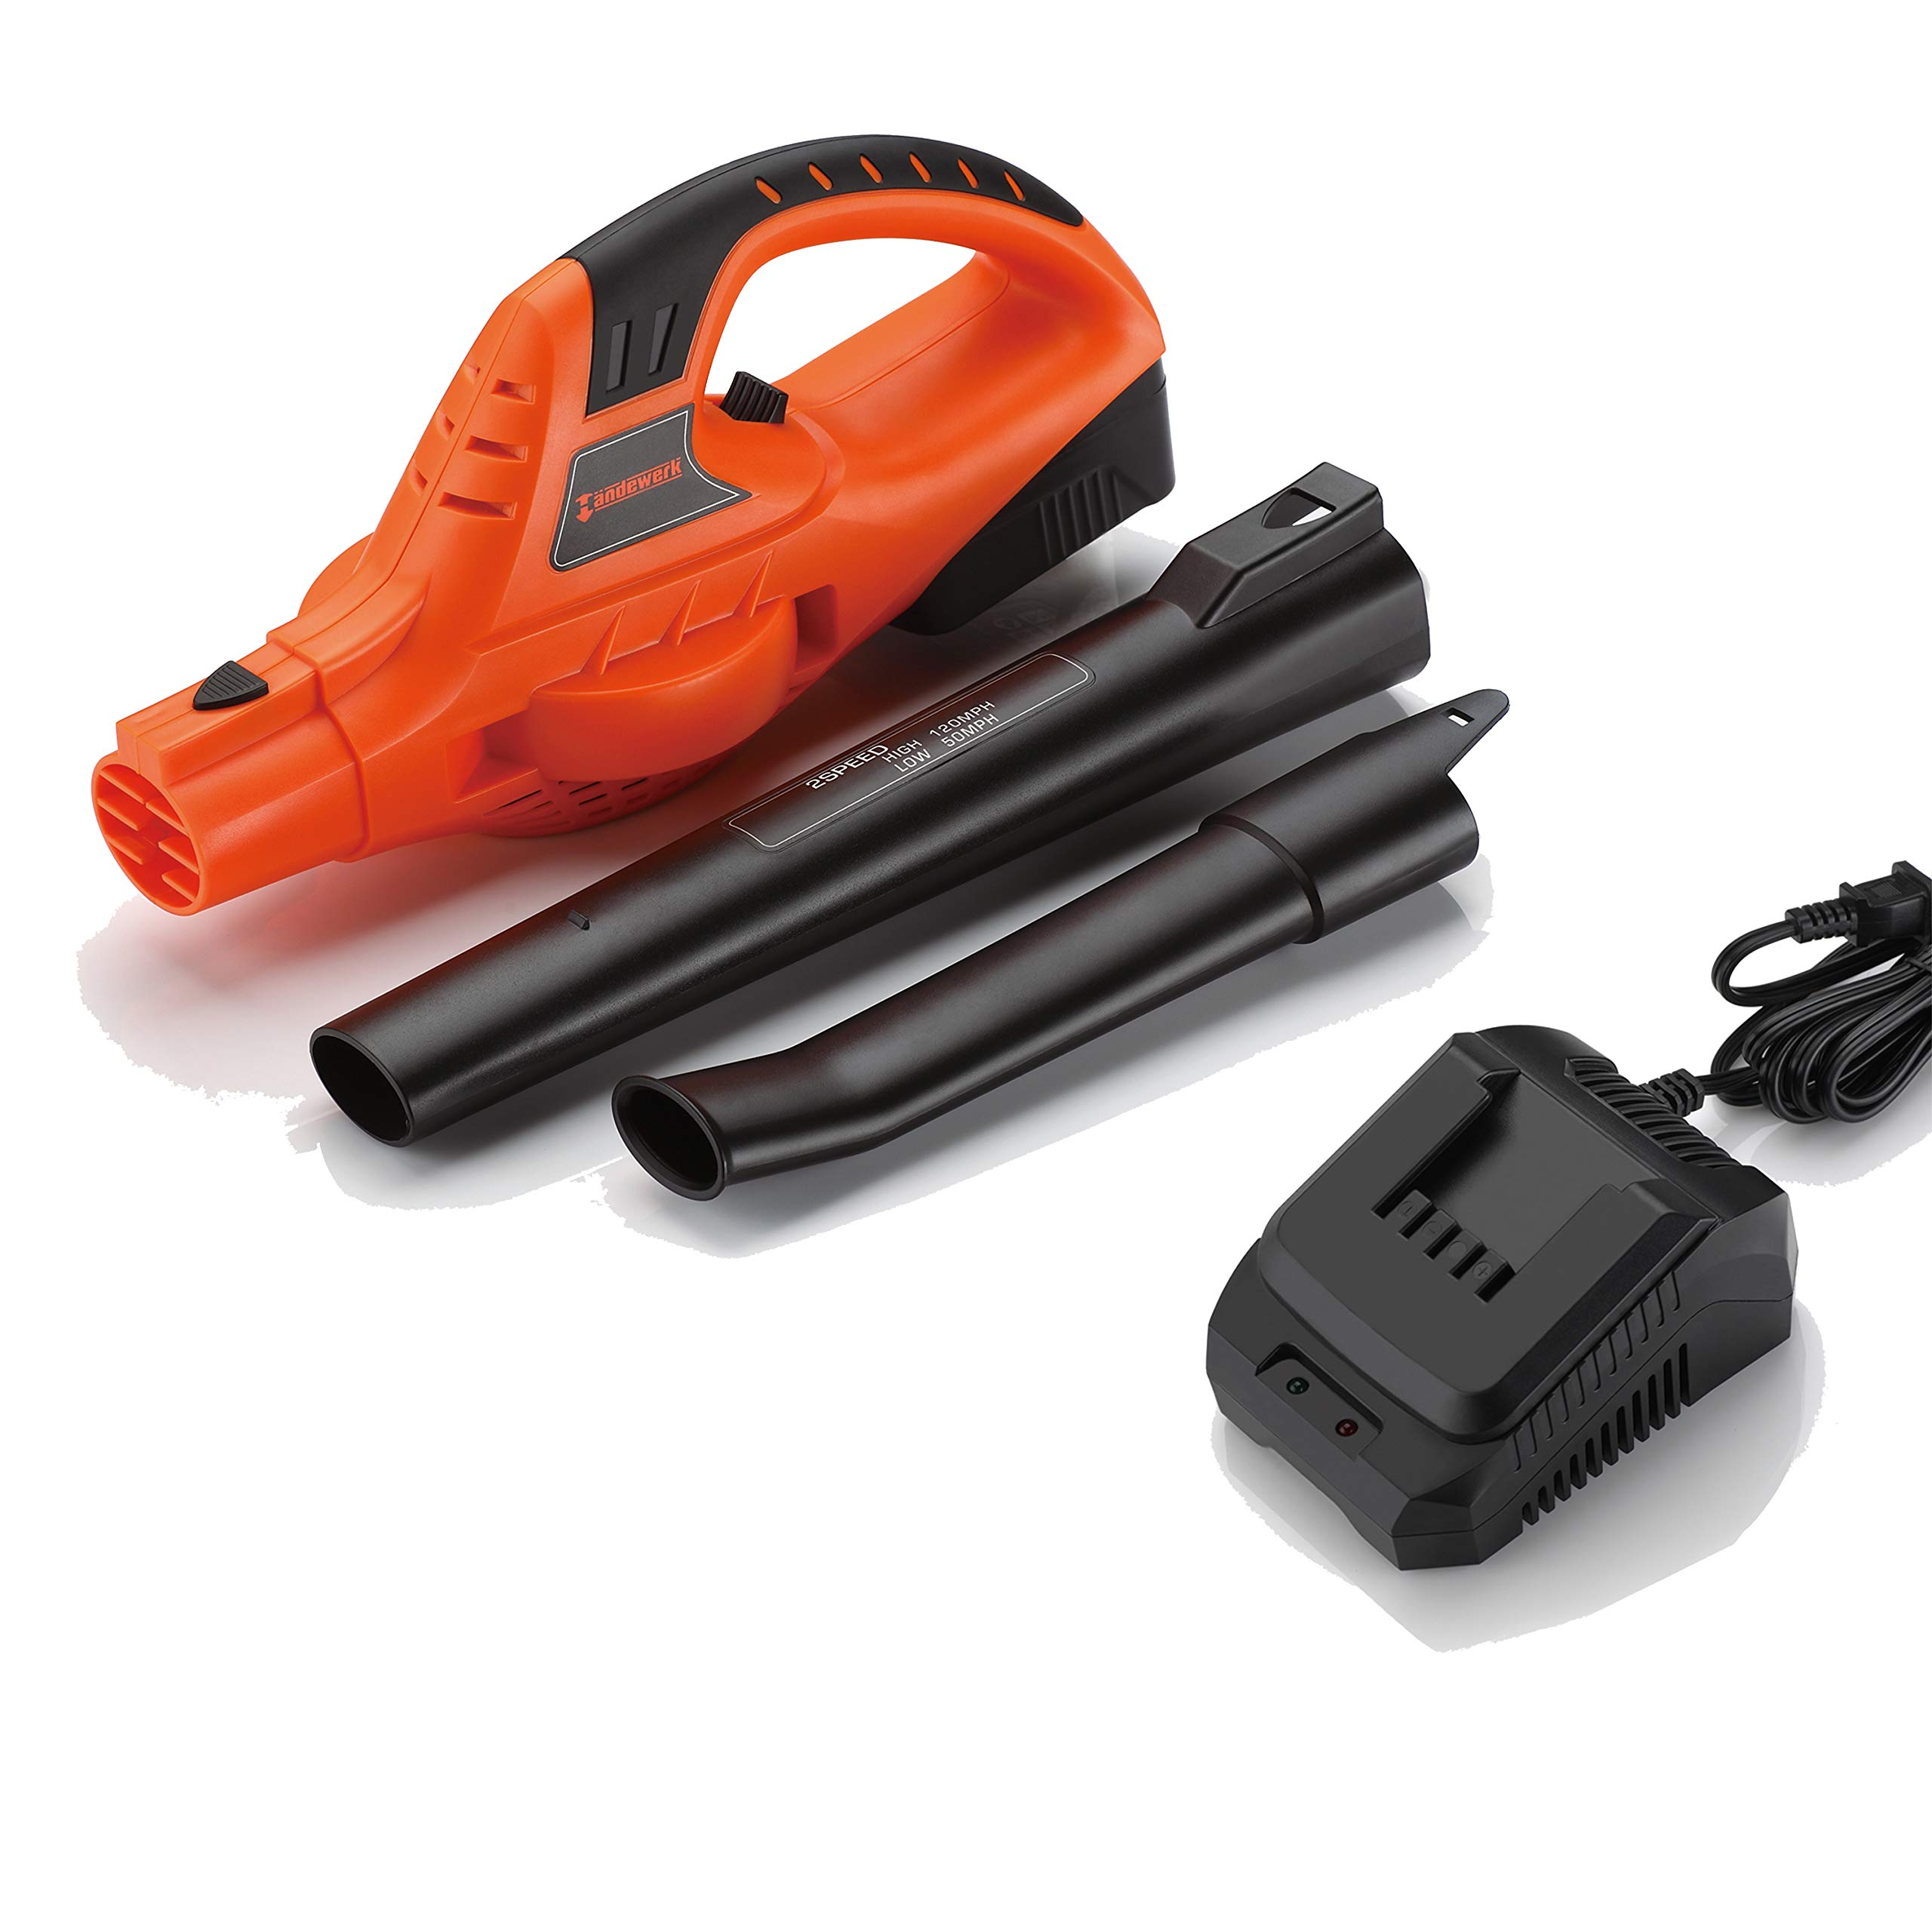 Garden Bean 130 MPH High Performance Variable Speed Cordless Handheld Leaf Blower with Battery & Charger by Garden Bean (Image #4)